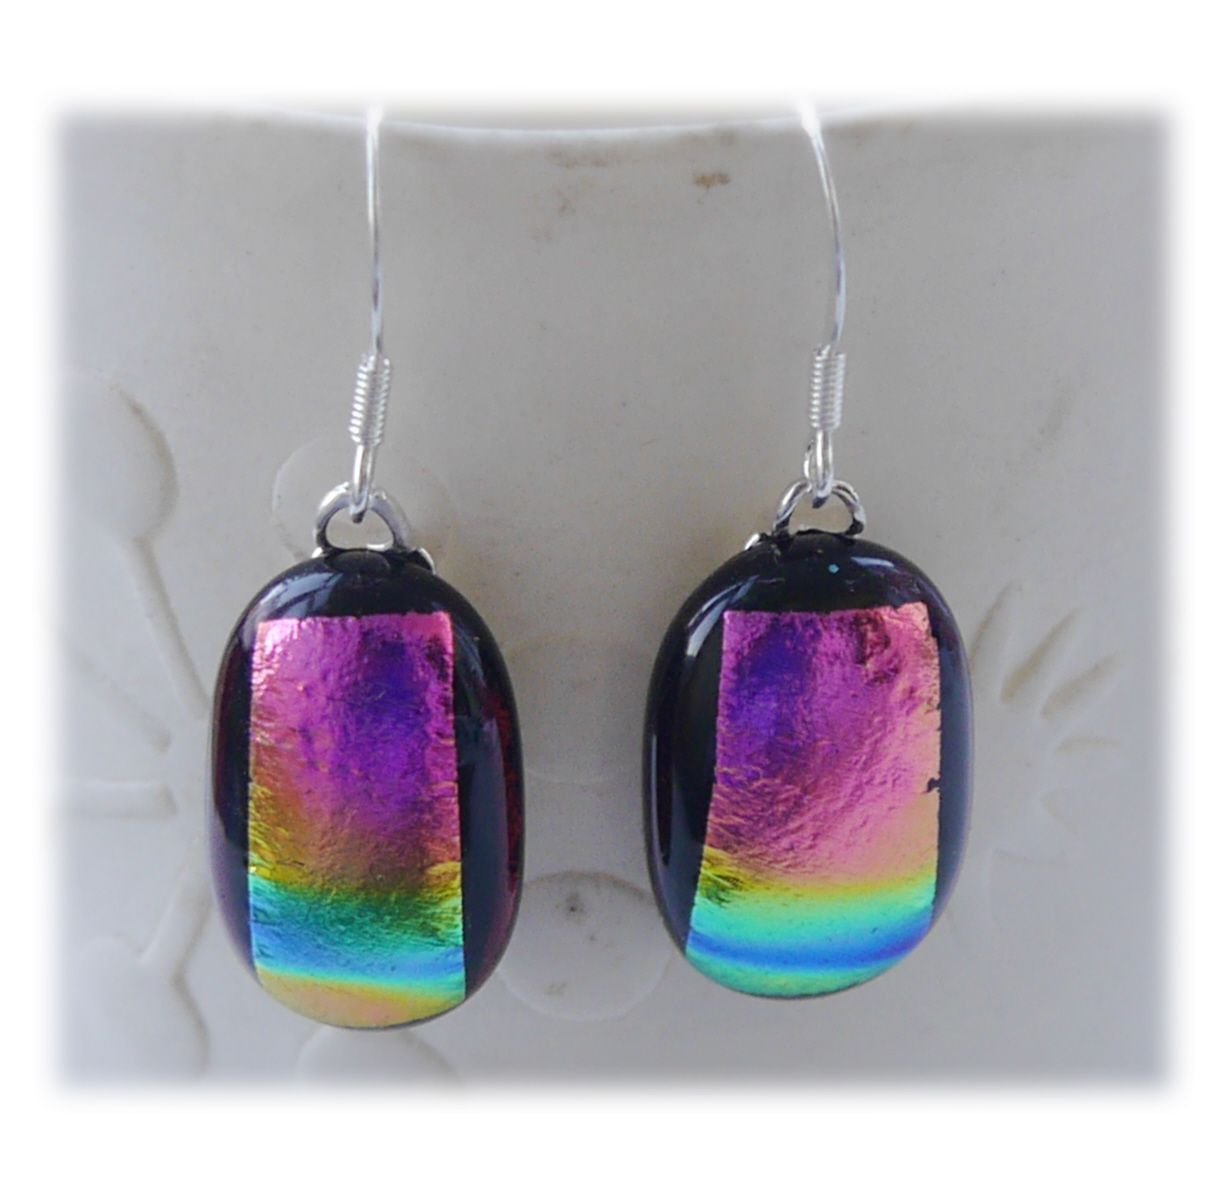 Earrings little 230 #19048cm Treasure Dichroic dish 003 #1908 @FOLKSY @1908